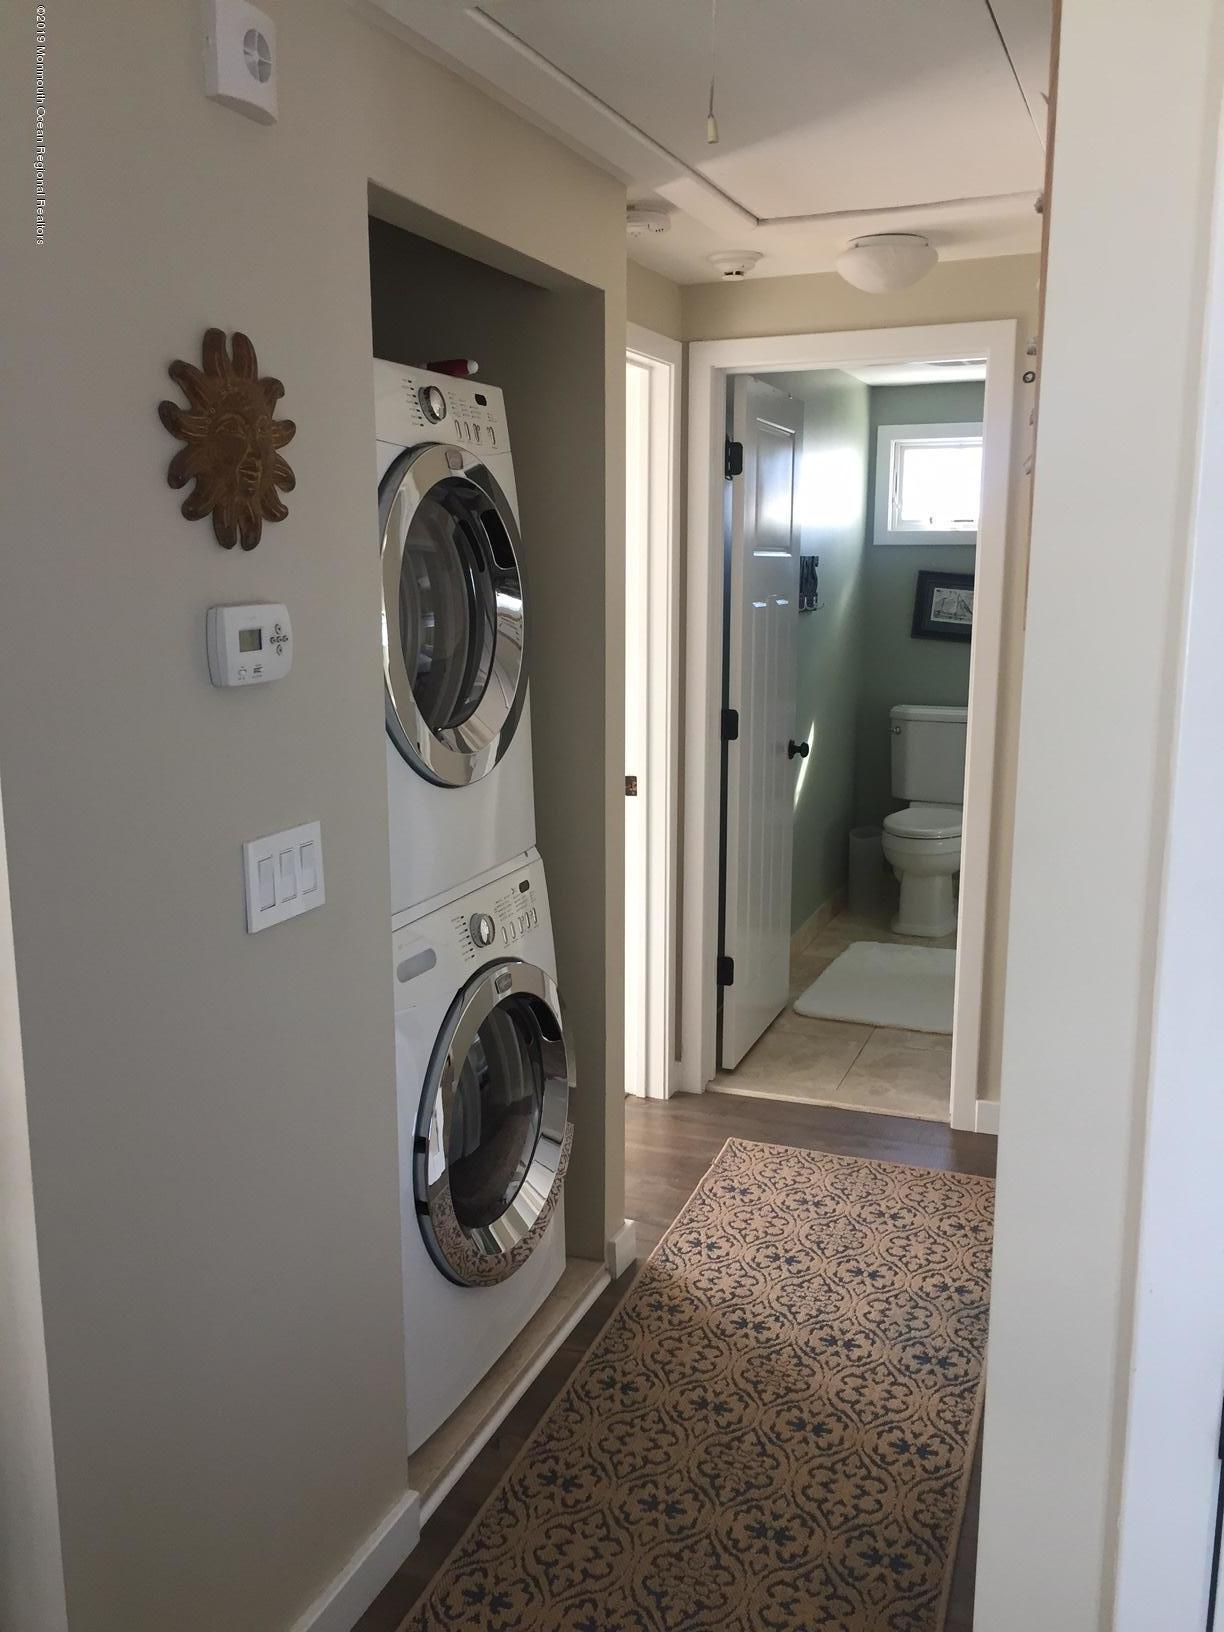 Washer and dryer in apt